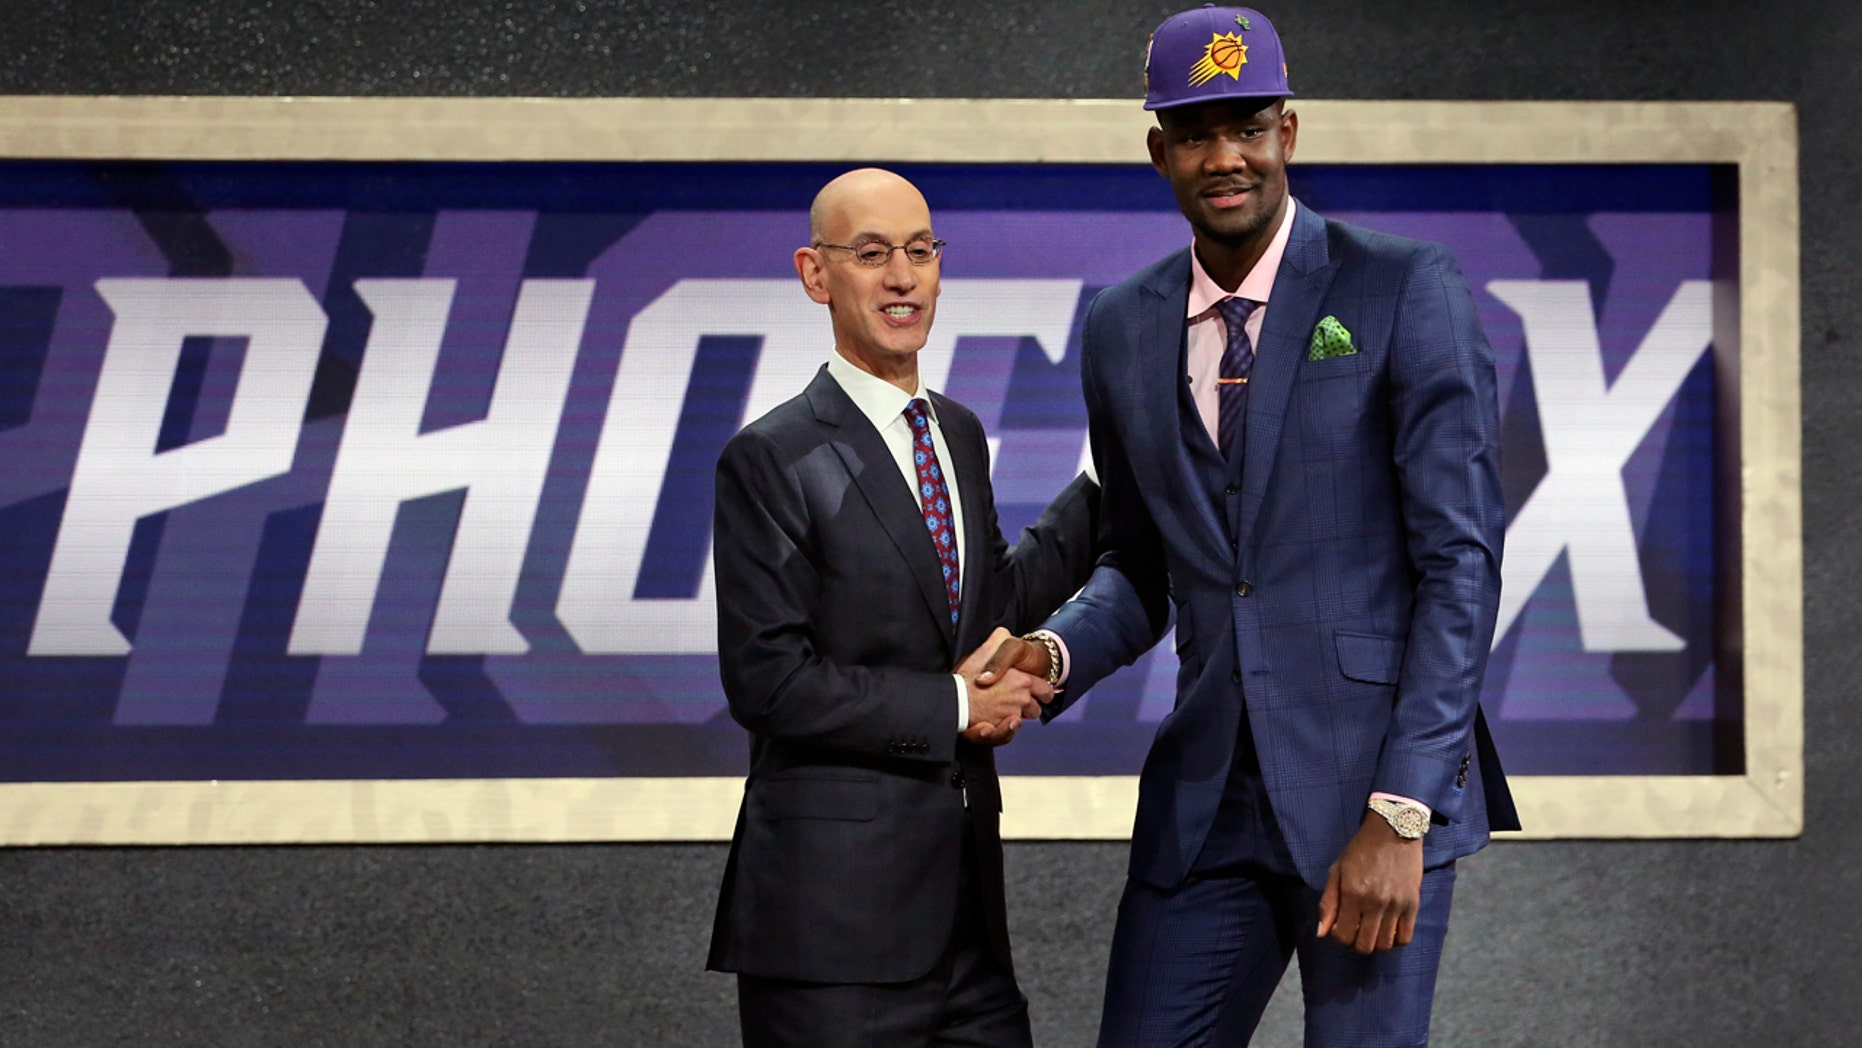 Arizona's Deandre Ayton, right, poses with NBA Commissioner Adam Silver after he was picked first overall by the Phoenix Suns during the NBA Draft at Barclays Center in Brooklyn, N.Y.